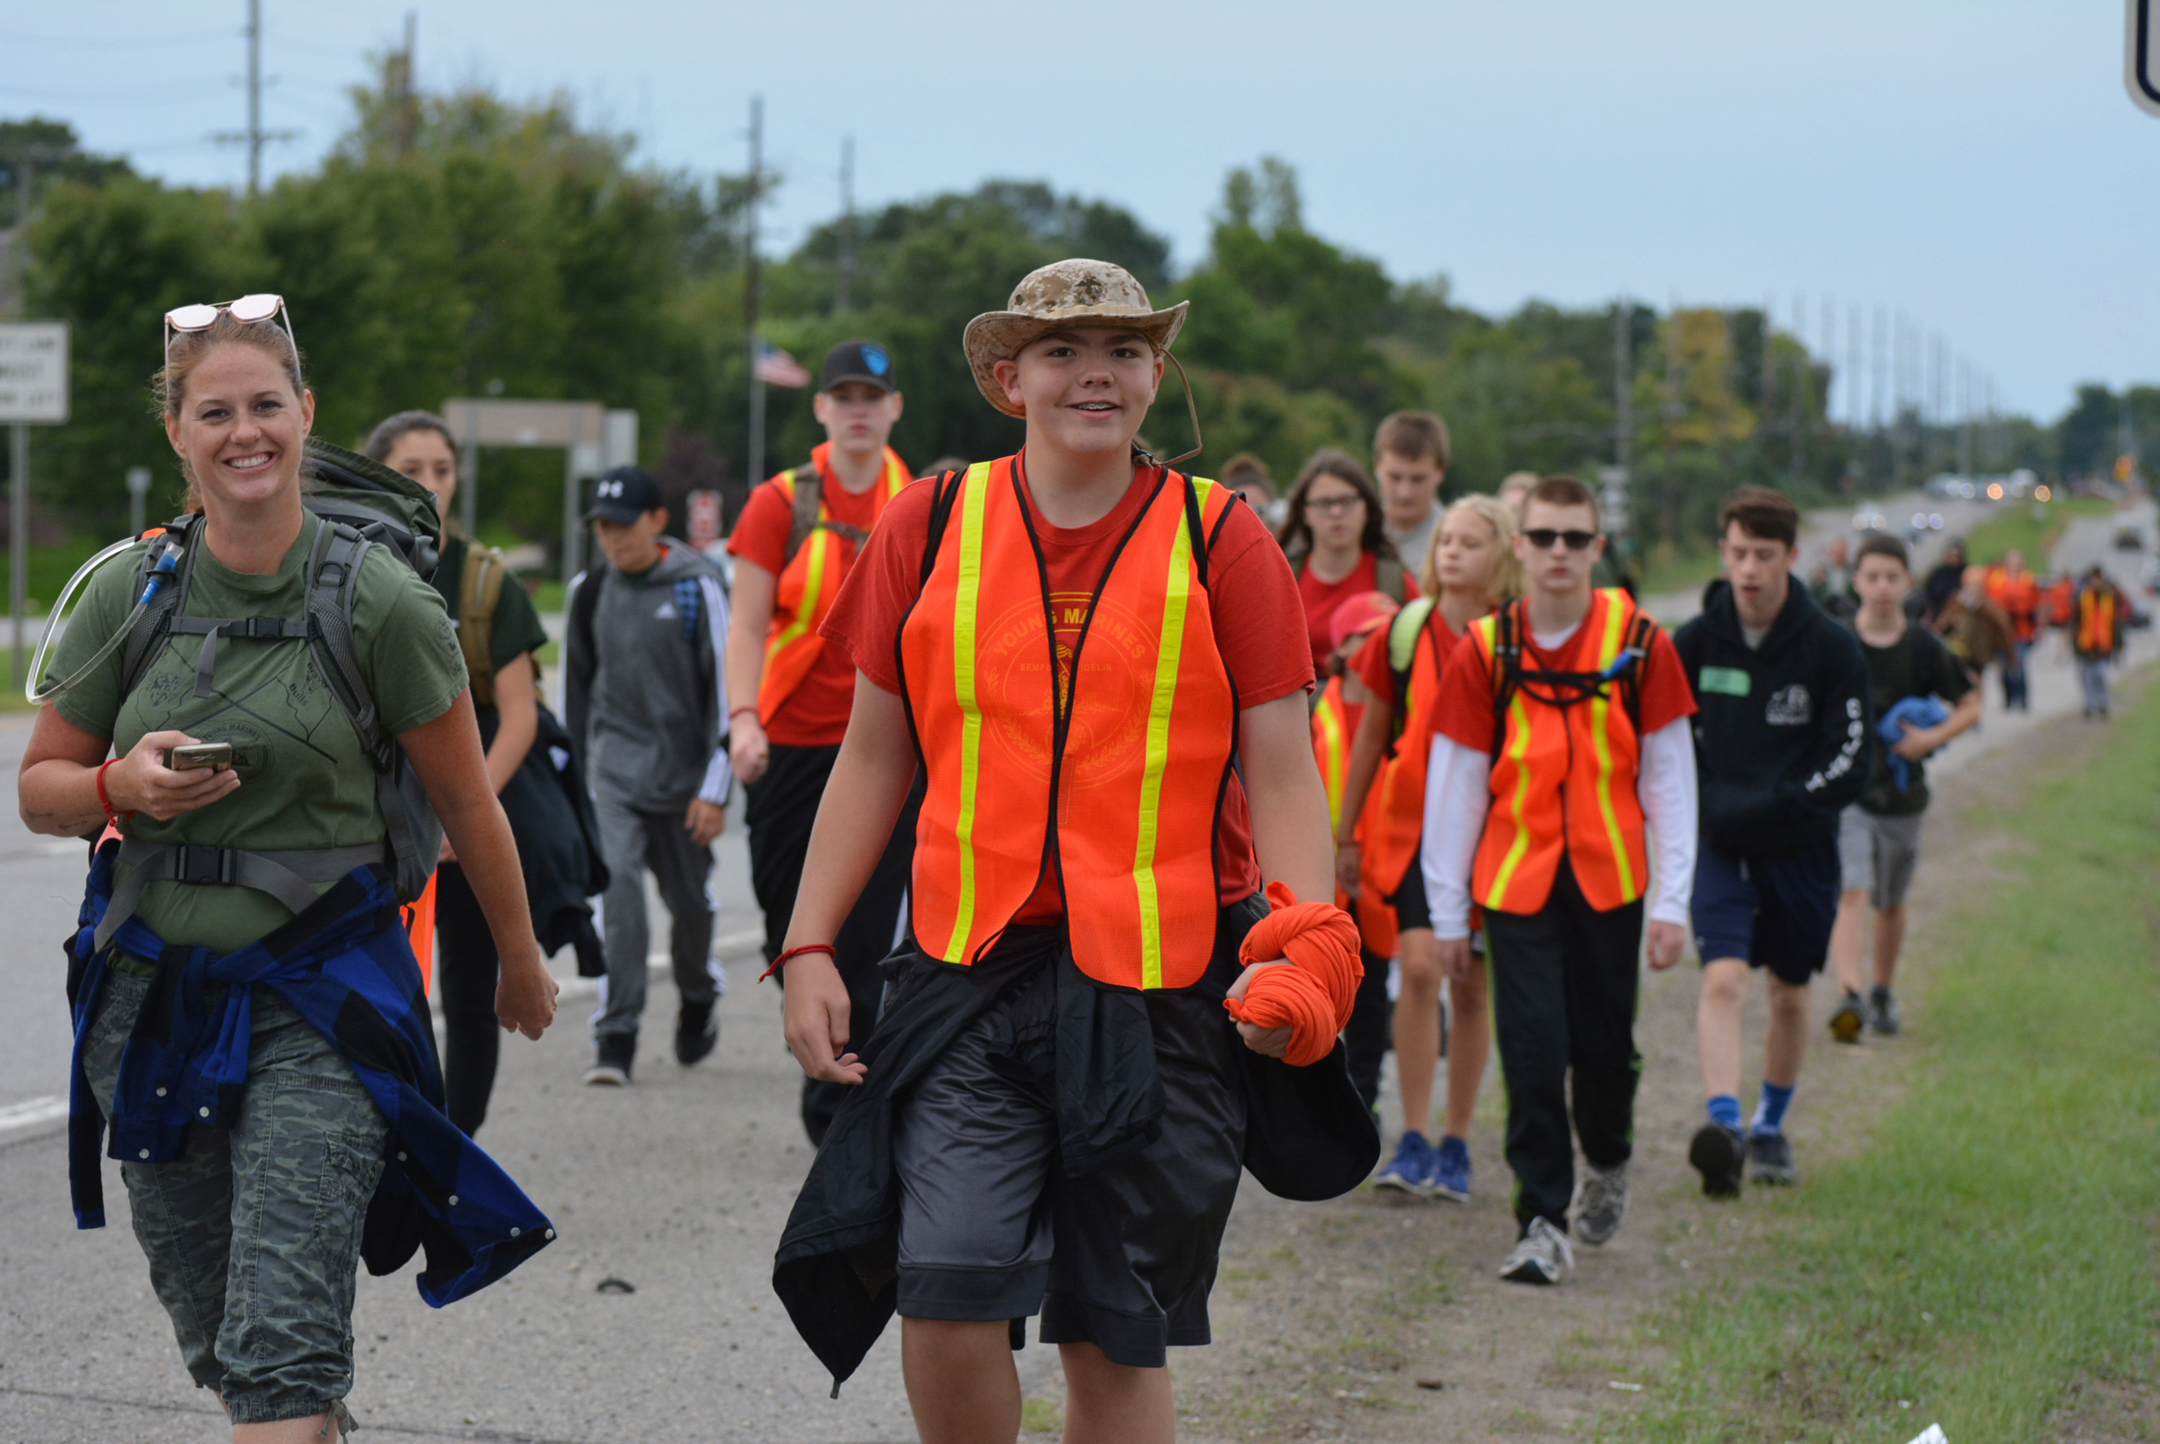 Folks of all ages participated in the Ruck for the Fallen Saturday. They walked along M-24, from Orion Twp. to Lapeer. Photo by C.J. Carnacchio.